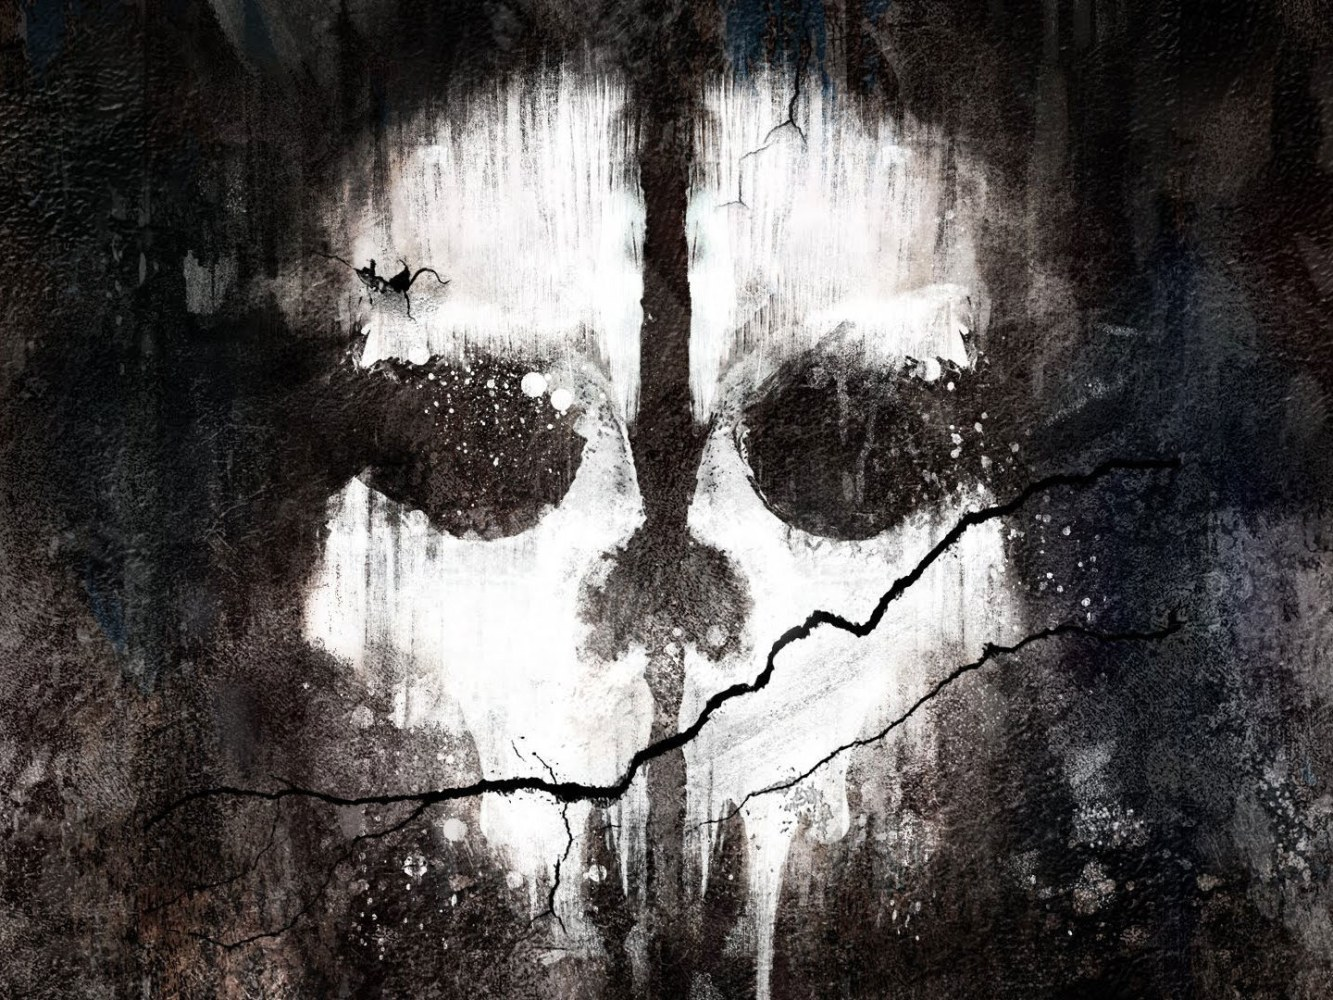 Call of duty ghosts ships 1 billion in copies but how much did call of duty ghosts passed 1 billion in sales to retailers publisher sciox Image collections